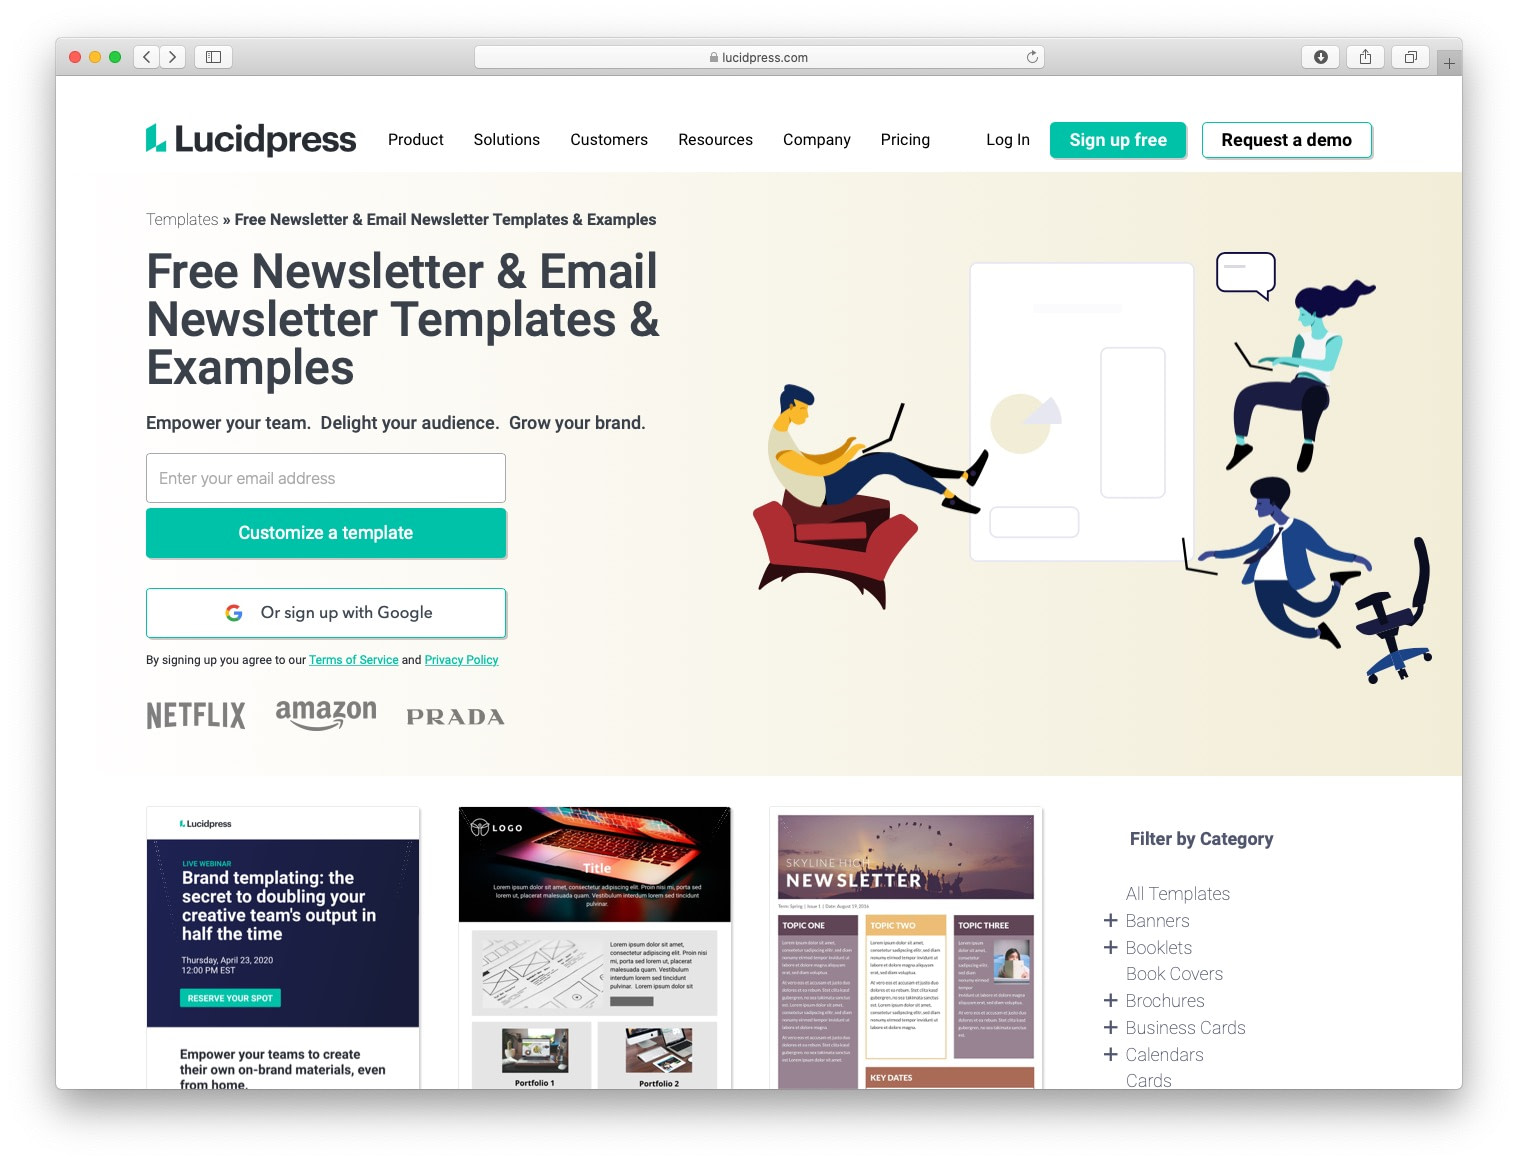 Free email newsletter templates: lucidpress